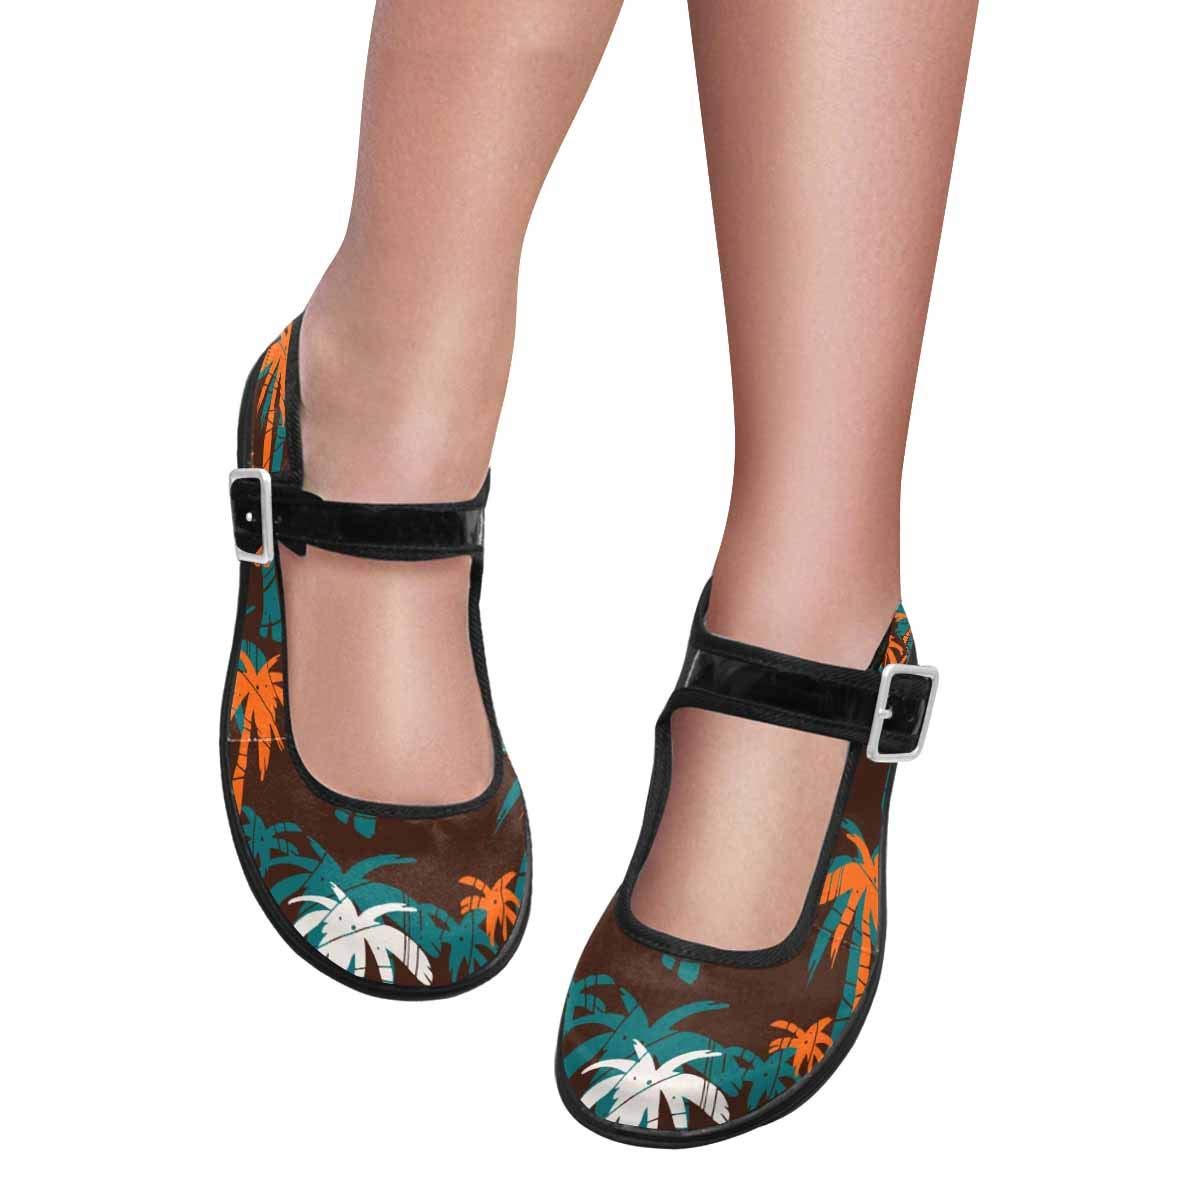 INTERESTPRINT Womens Satin Mary Jane Flats Ballet Shoes Colorful Exotic Palm Trees